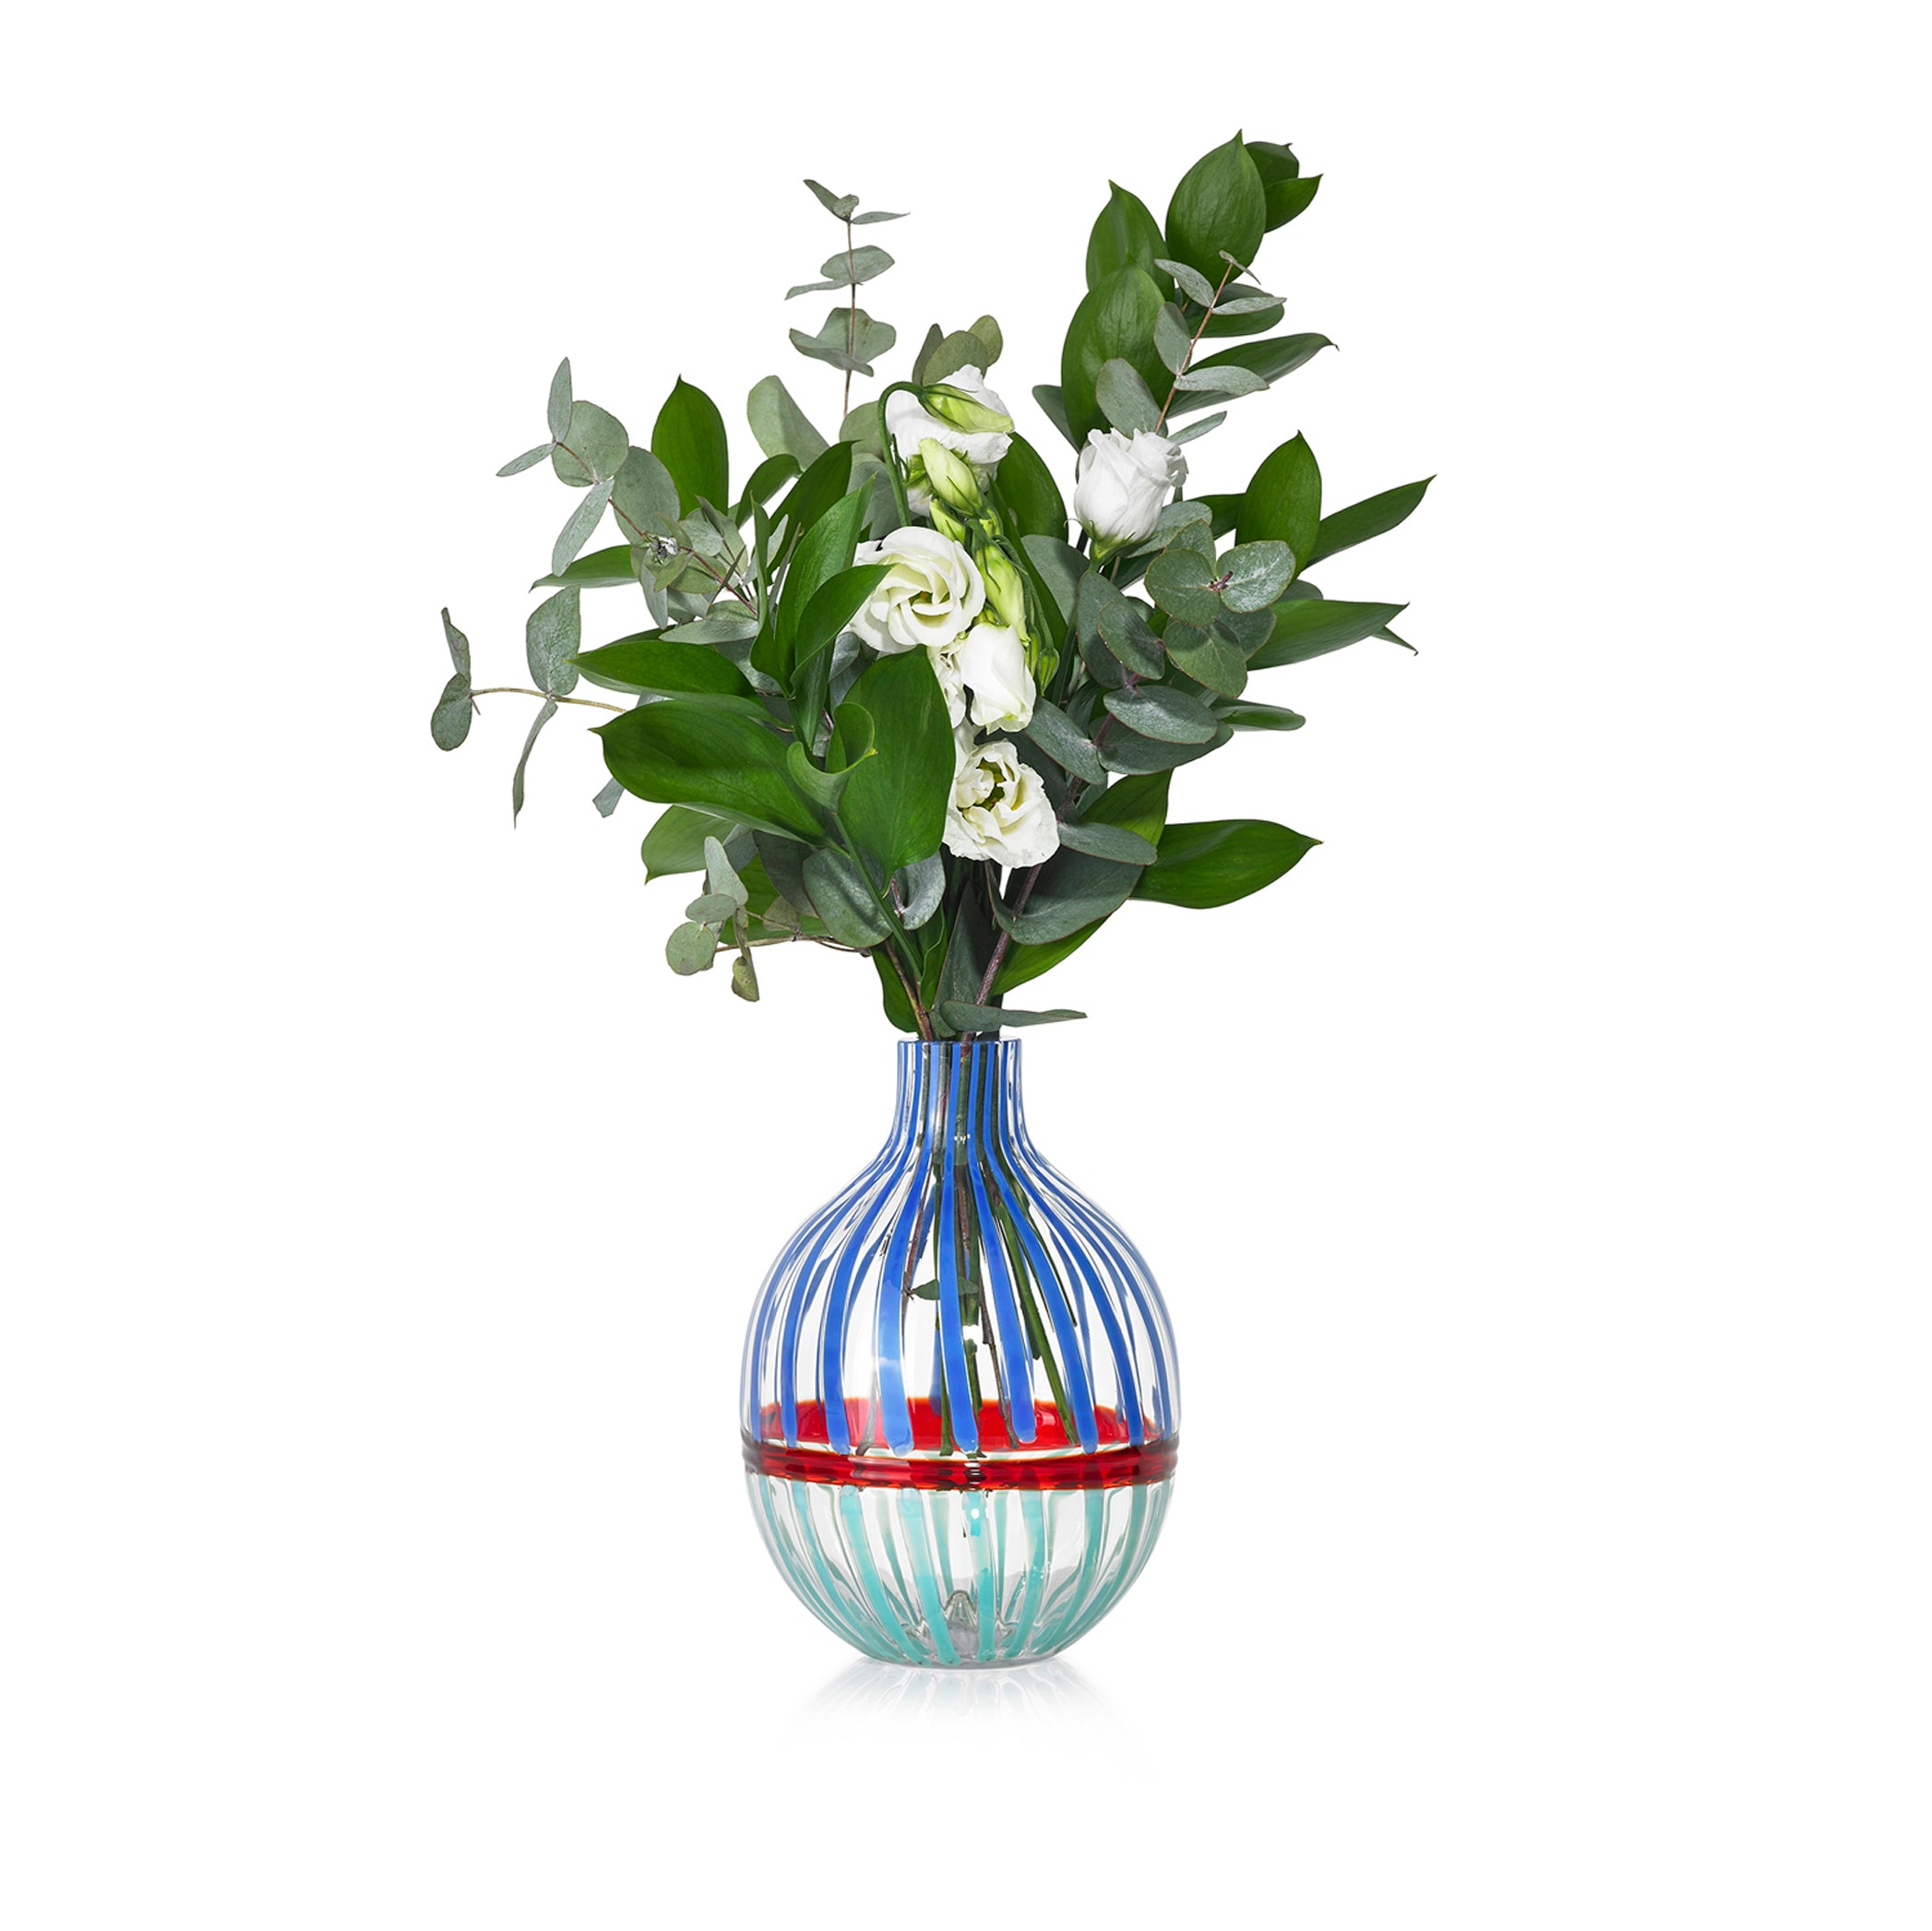 Handblown Double Stripe Glass Vase in Sky Blue, Red & Teal